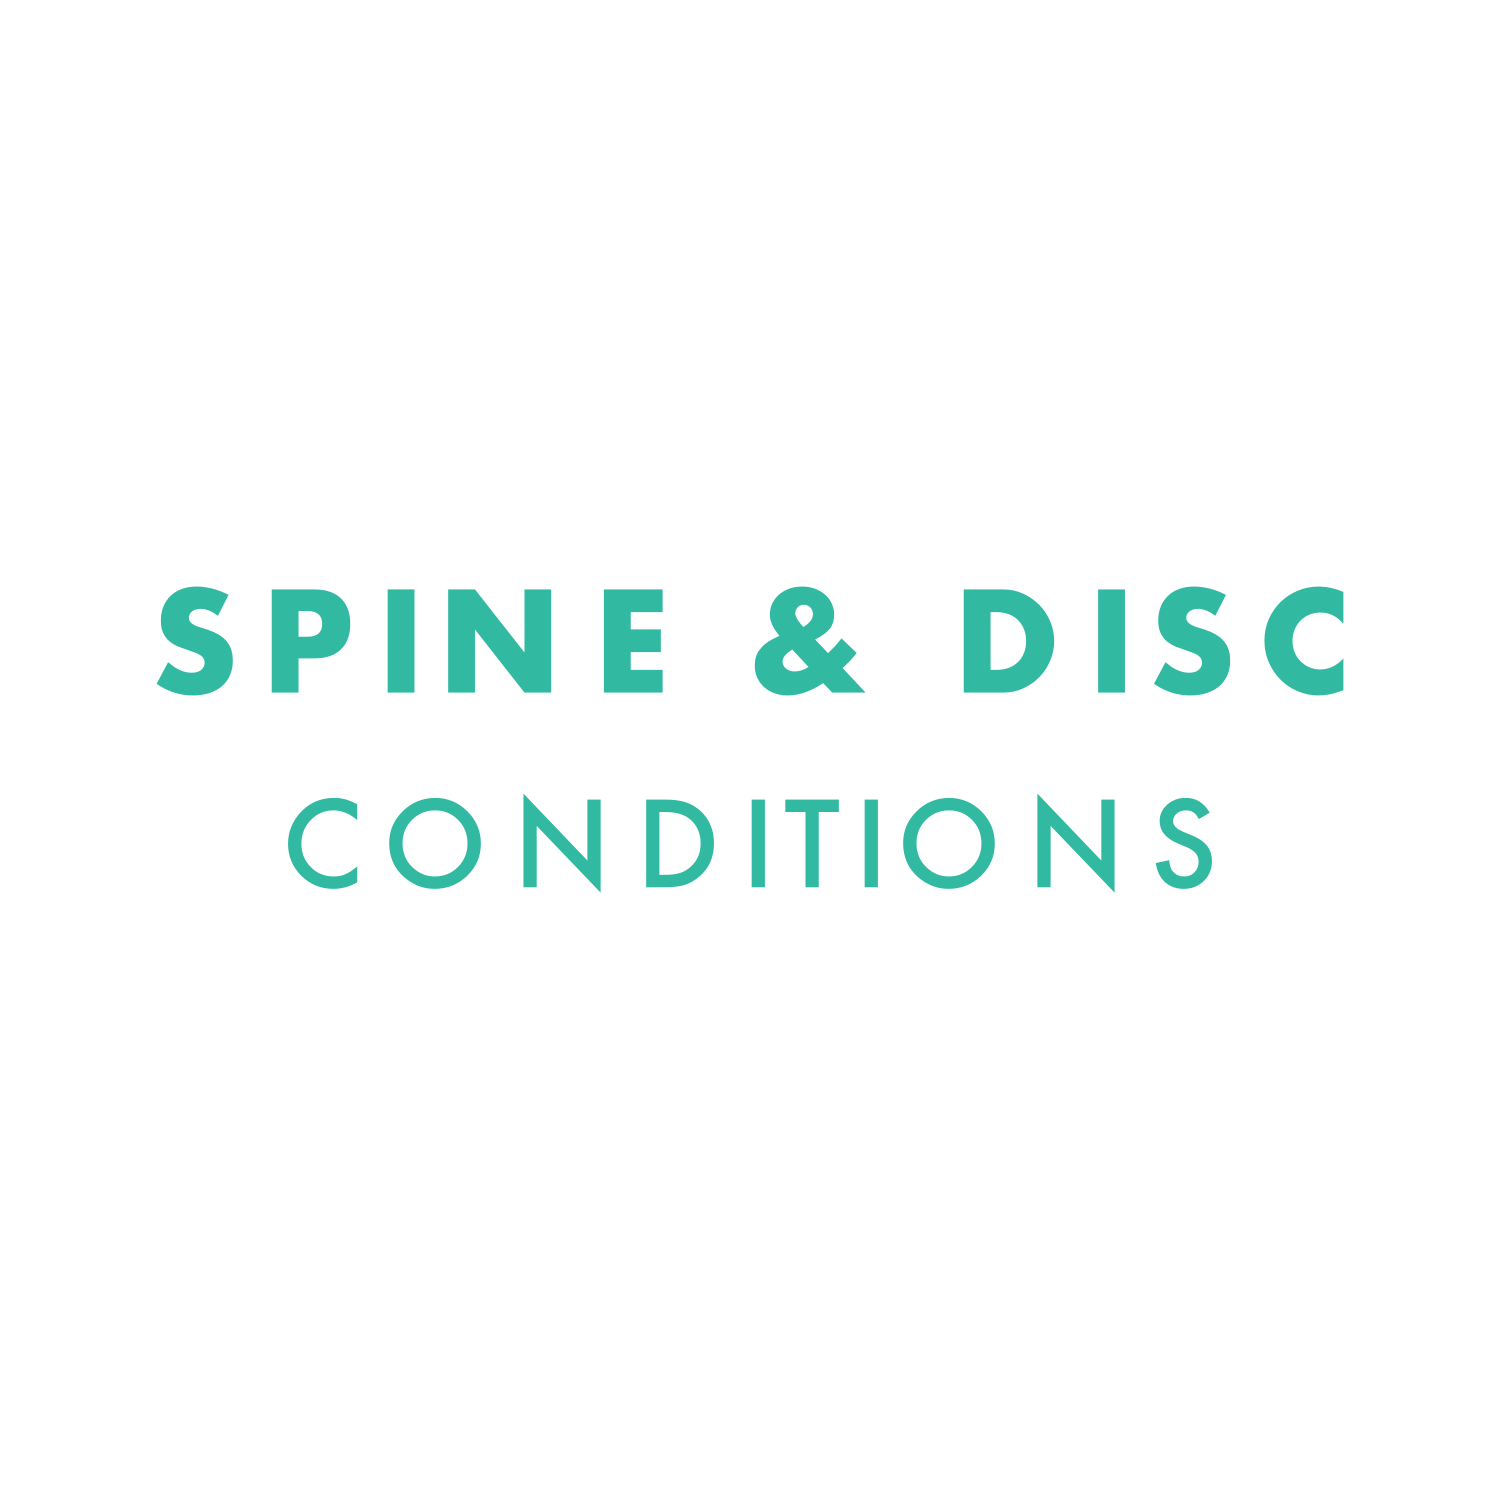 Spine & Disc Conditions